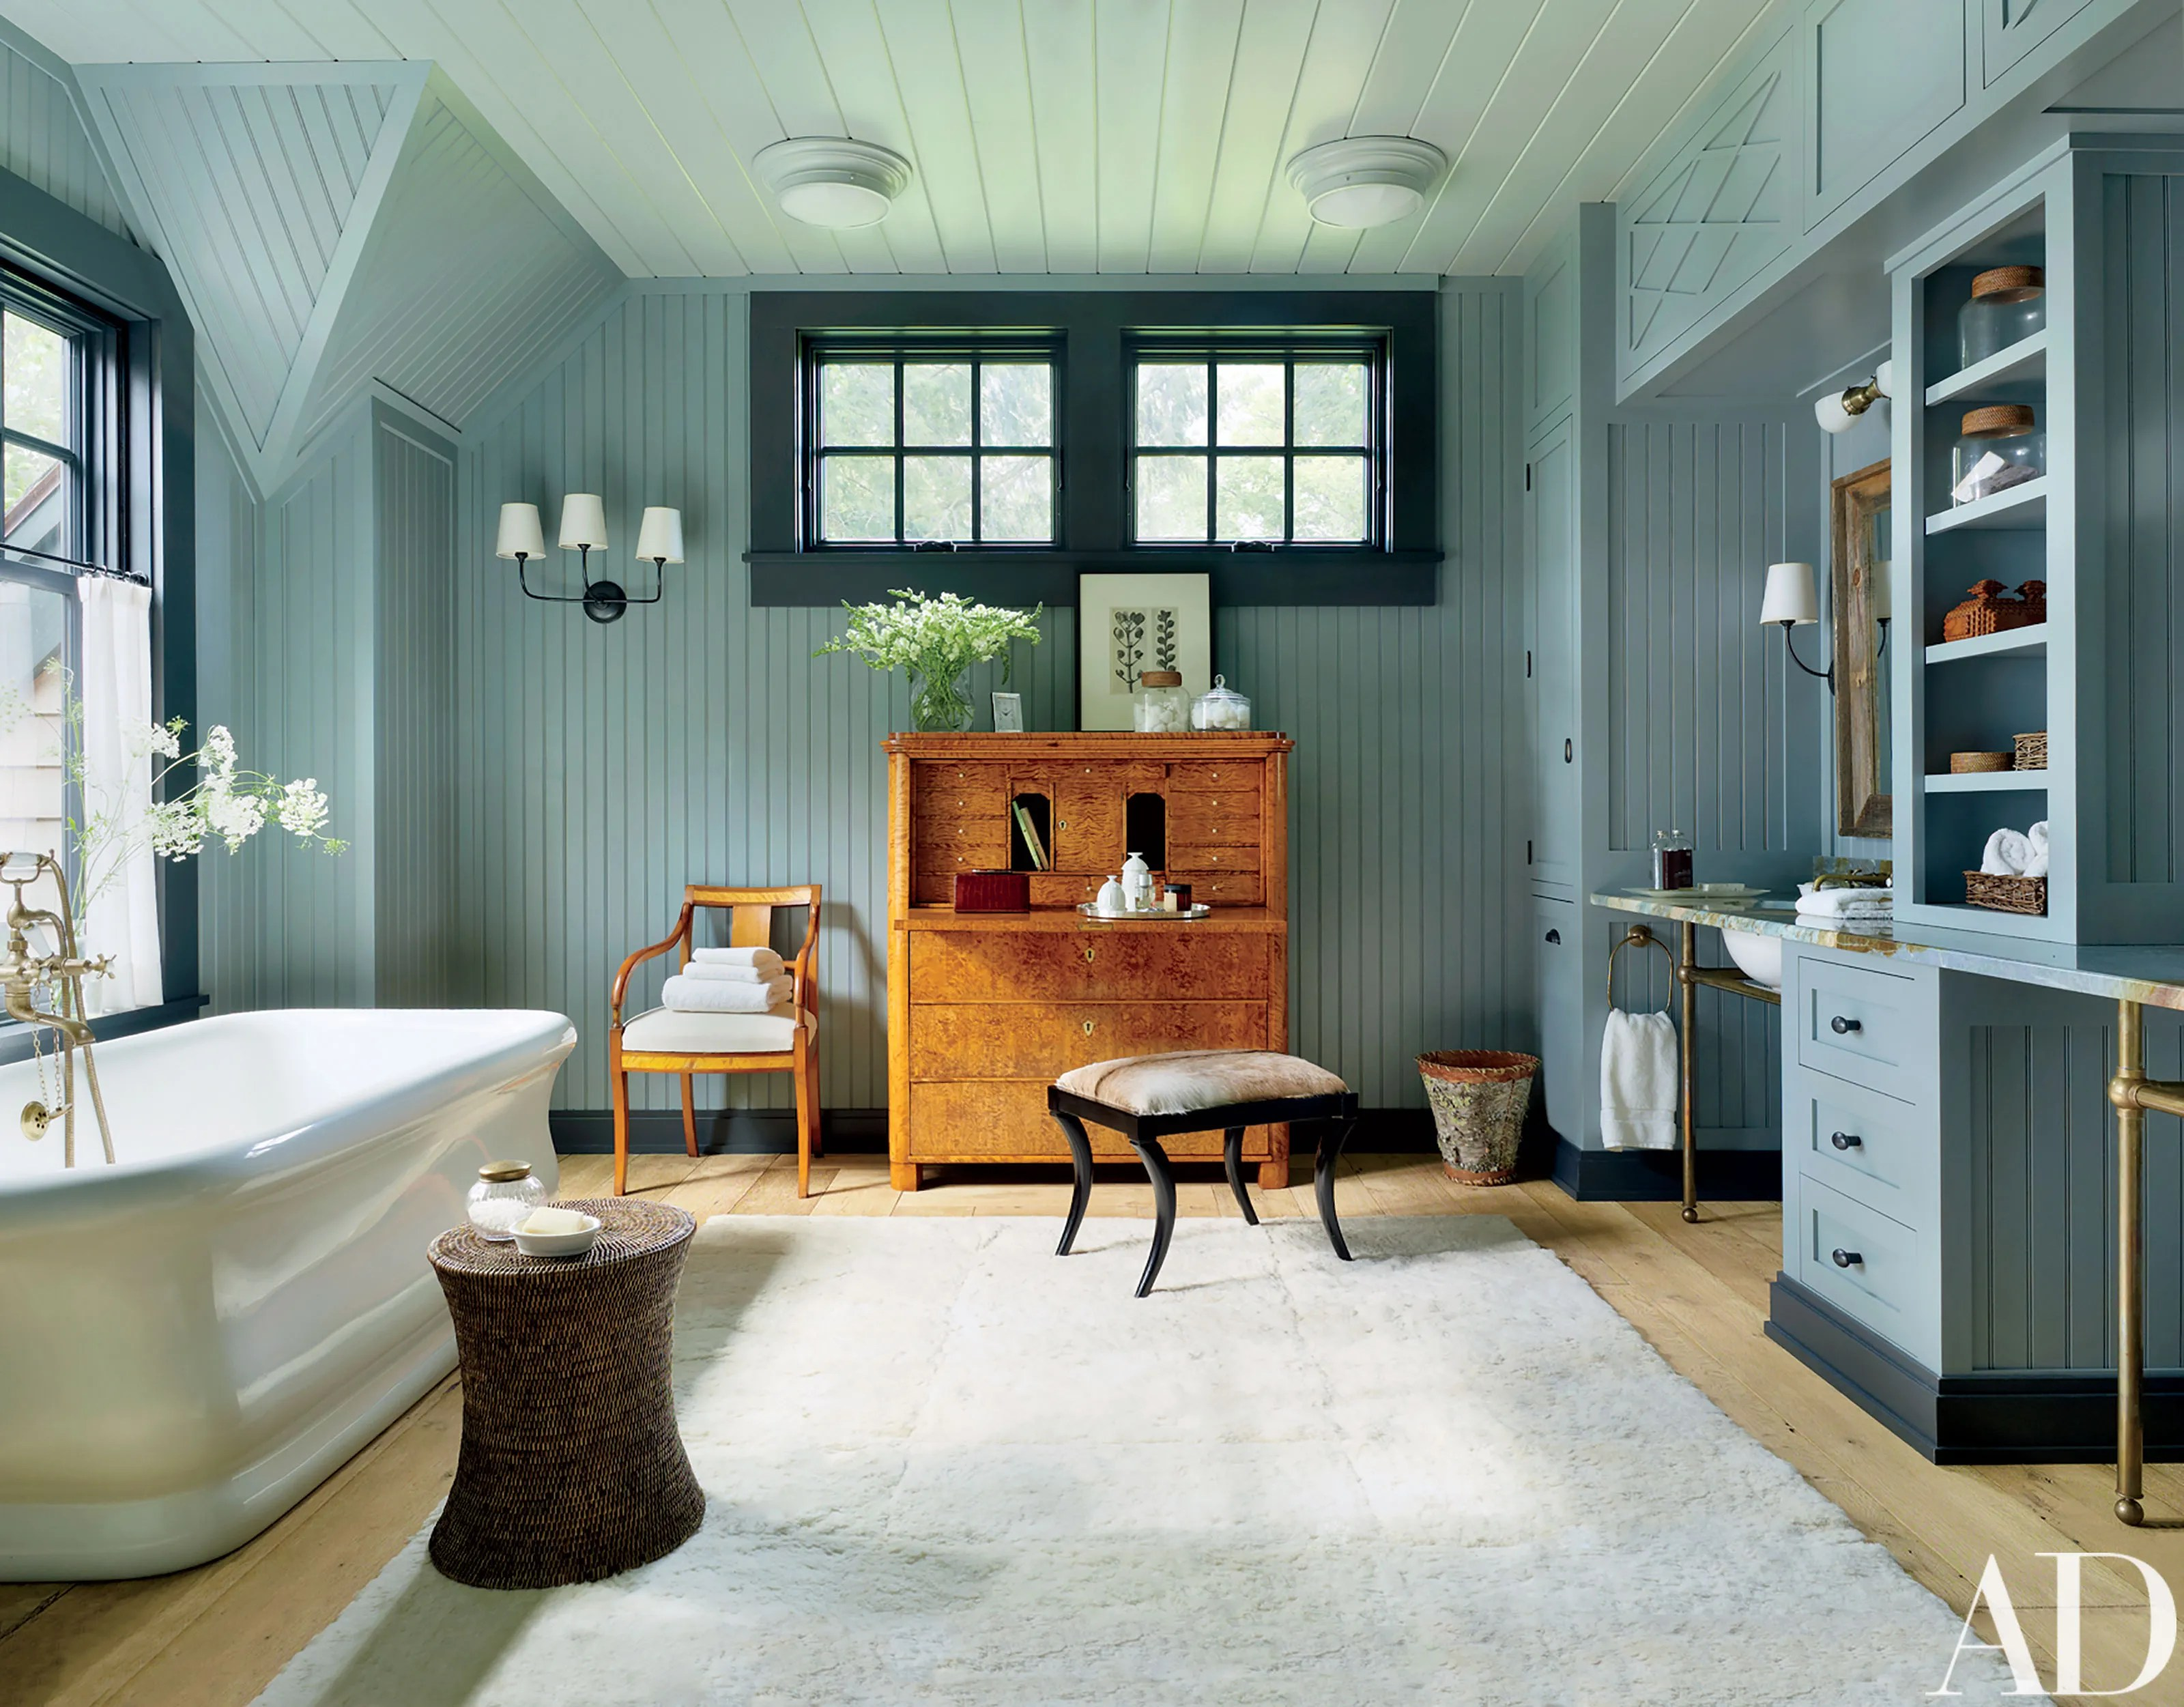 How To Choose The Best Bathroom Sink For Your Space